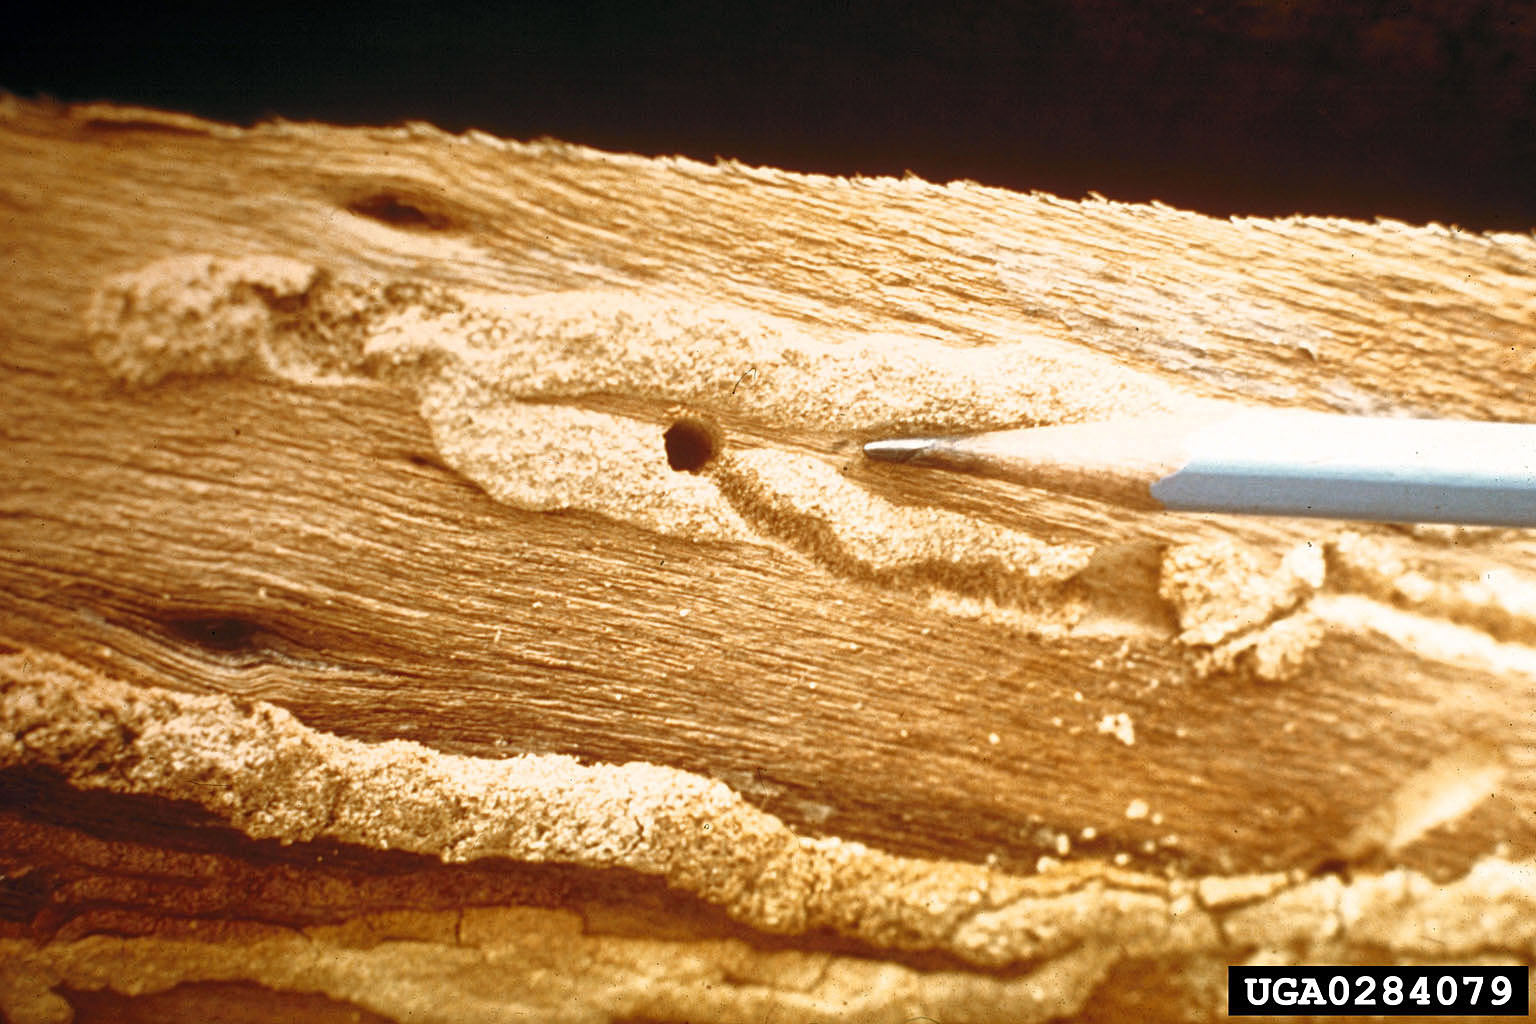 Redheaded Ash Borer Also A Threat To Ash Trees News